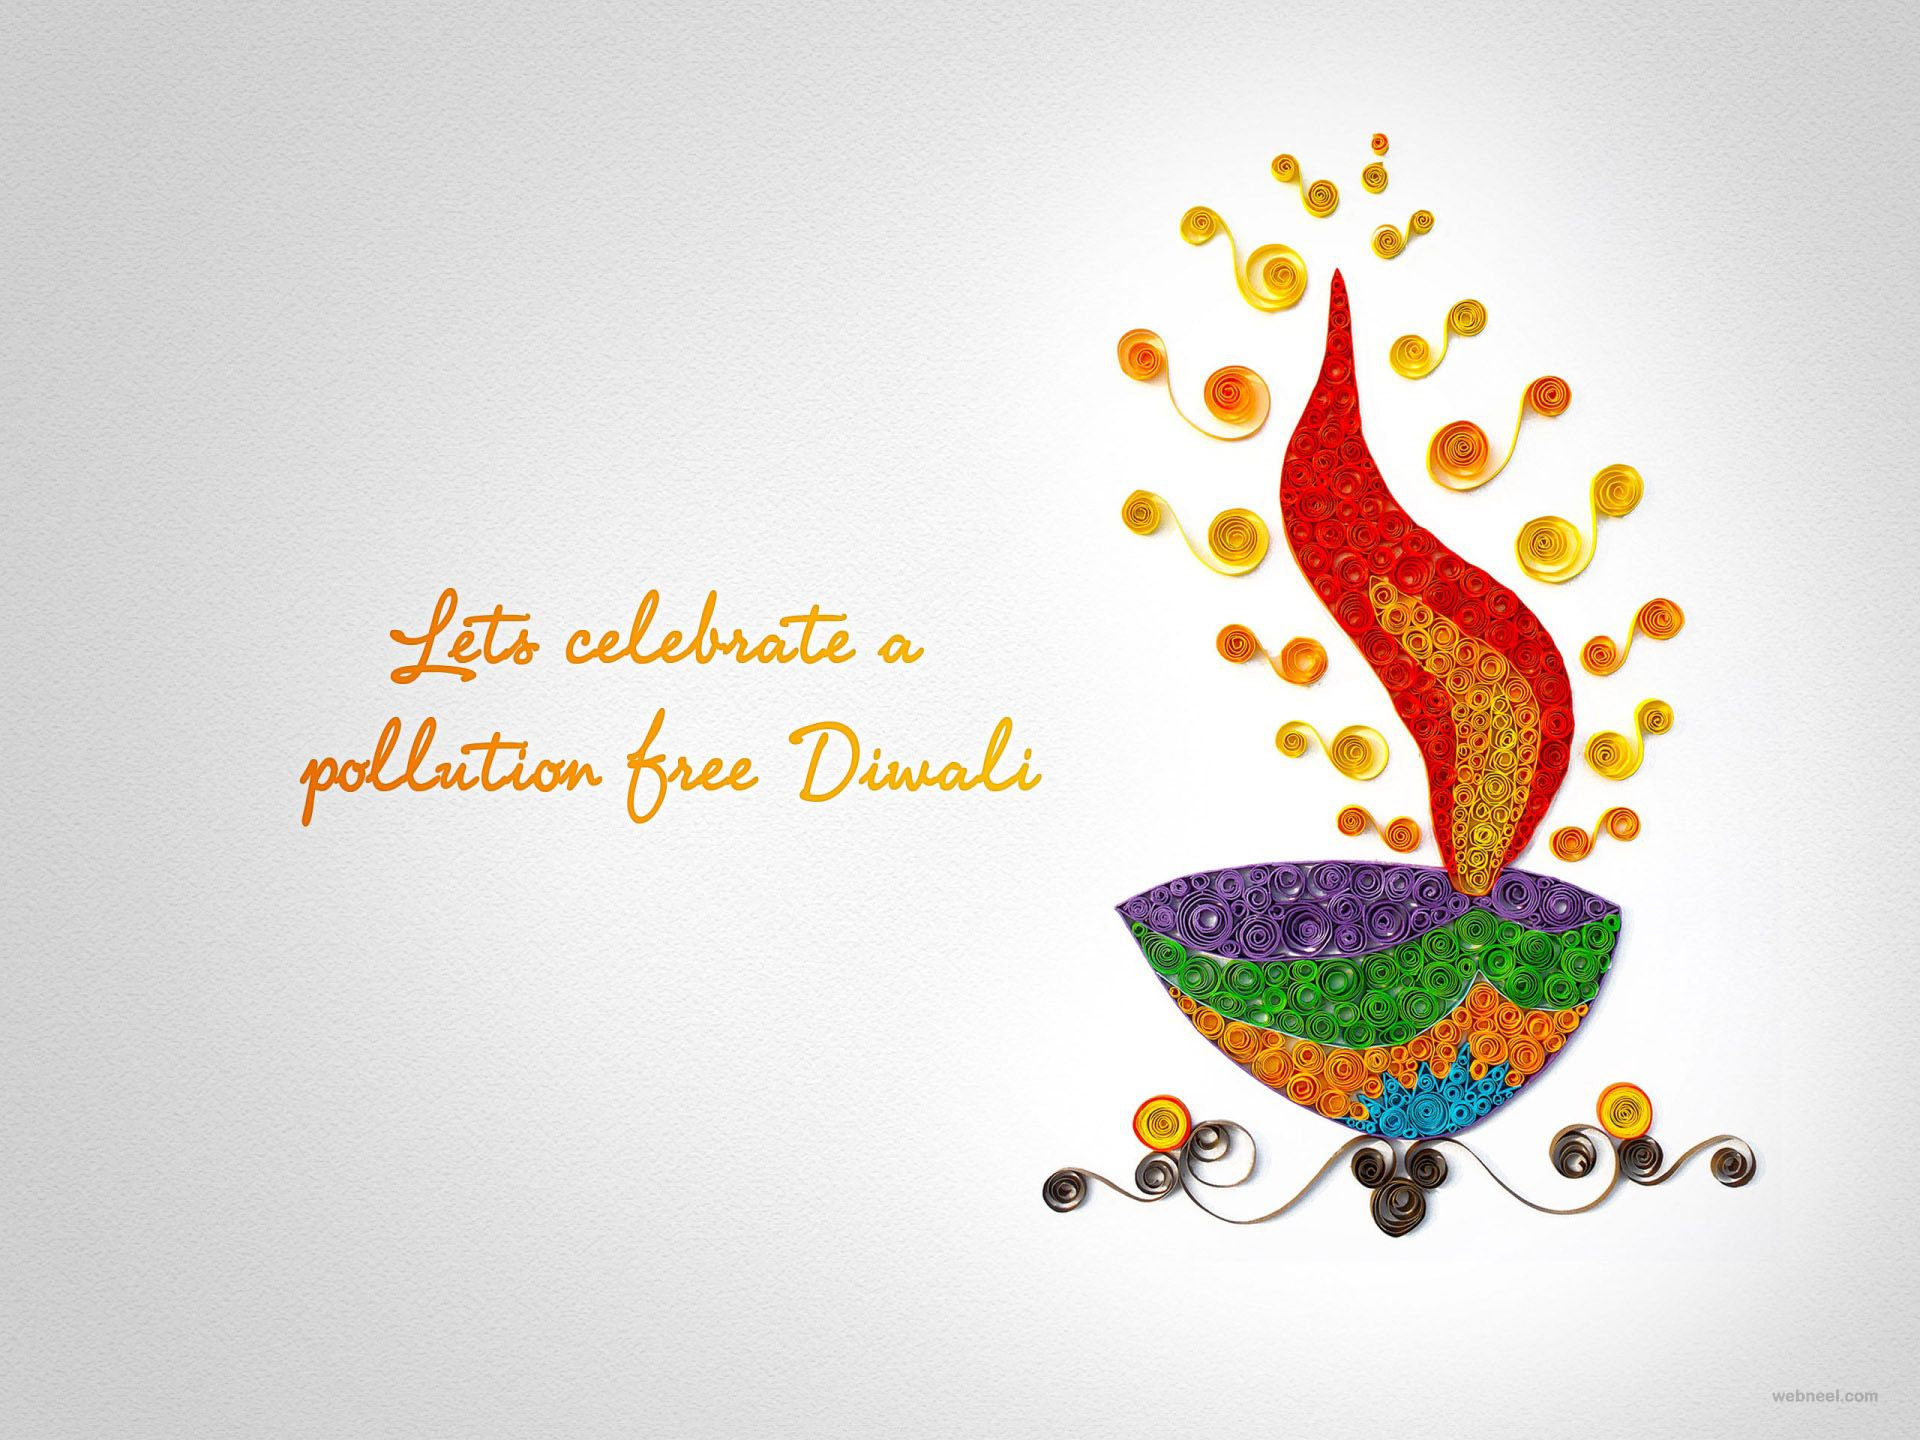 50 beautiful diwali greeting cards design and happy diwali wishes 50 beautiful diwali greeting cards design and happy diwali wishes m4hsunfo Images